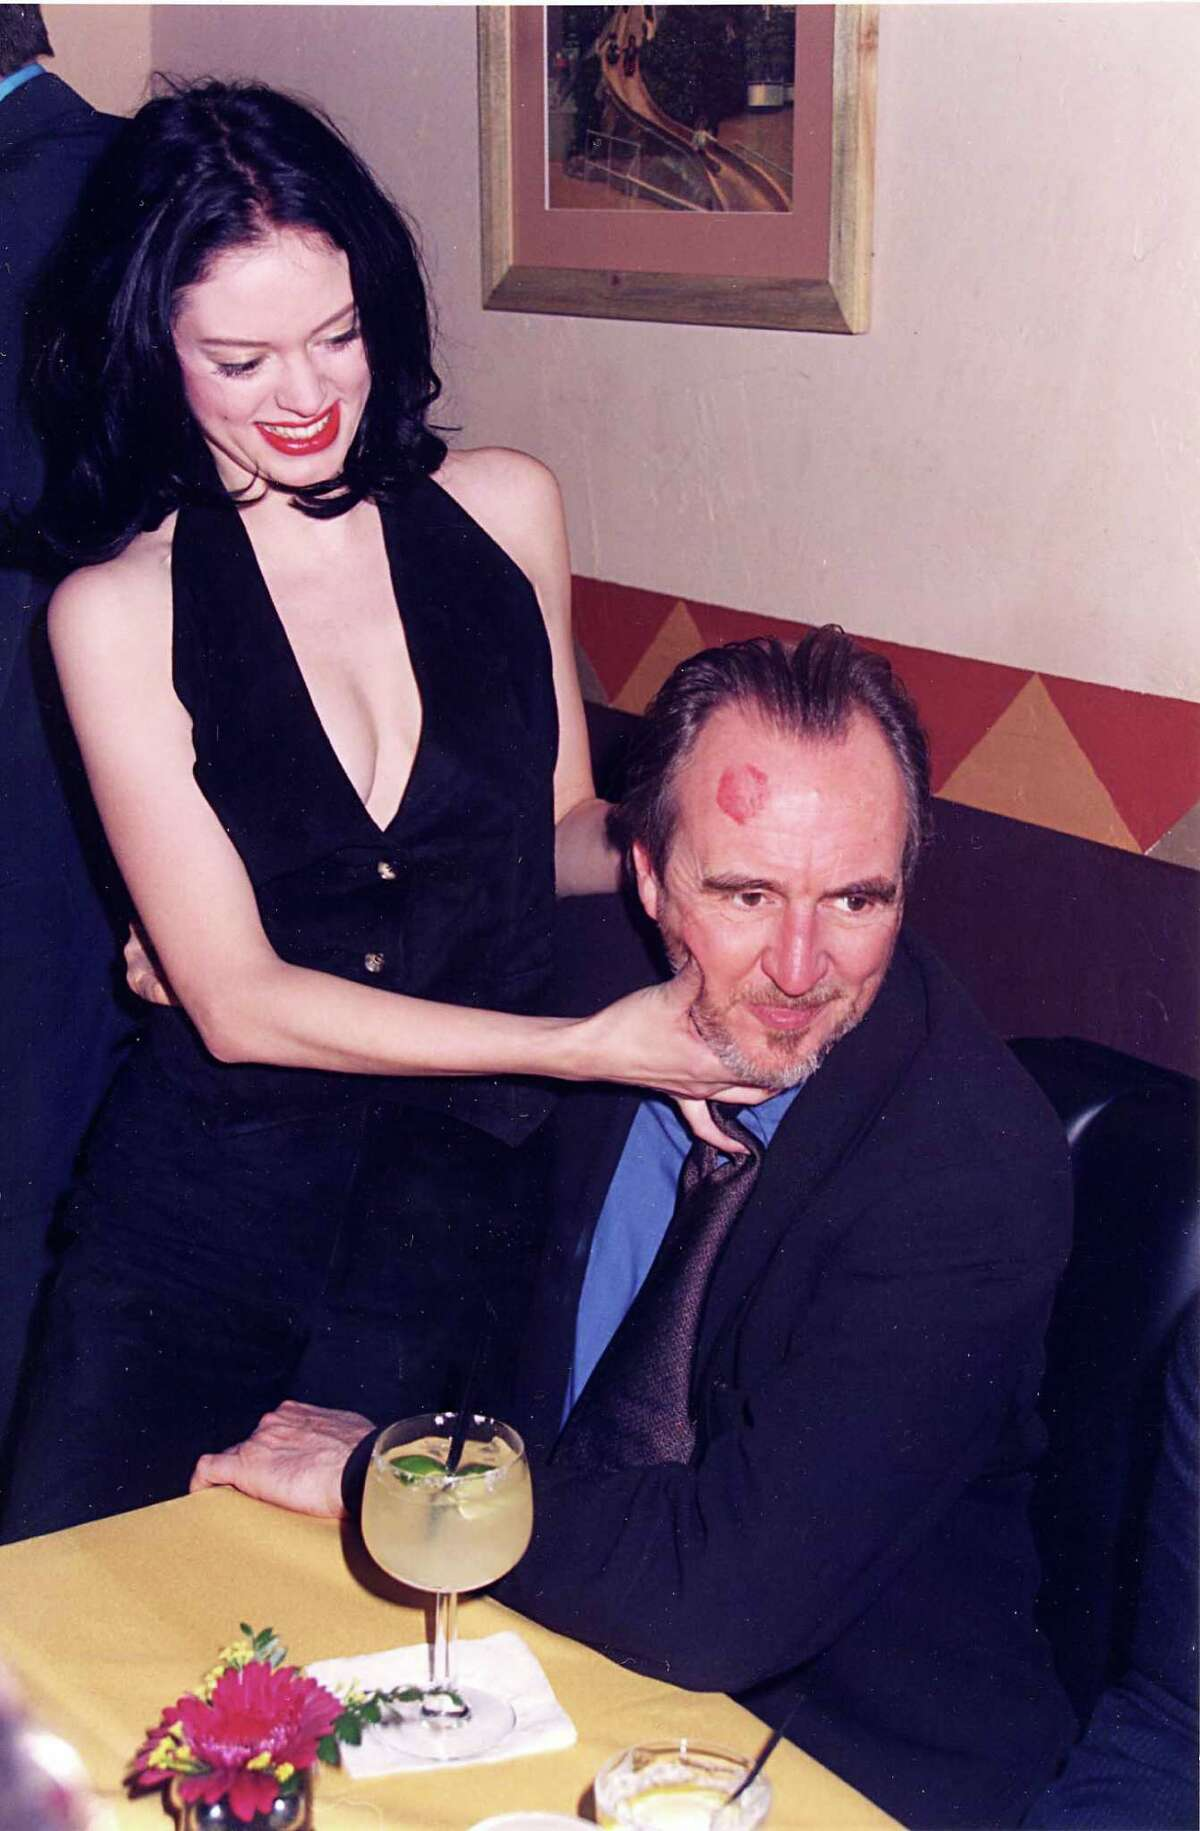 1996: McGowan and director Wes Craven during